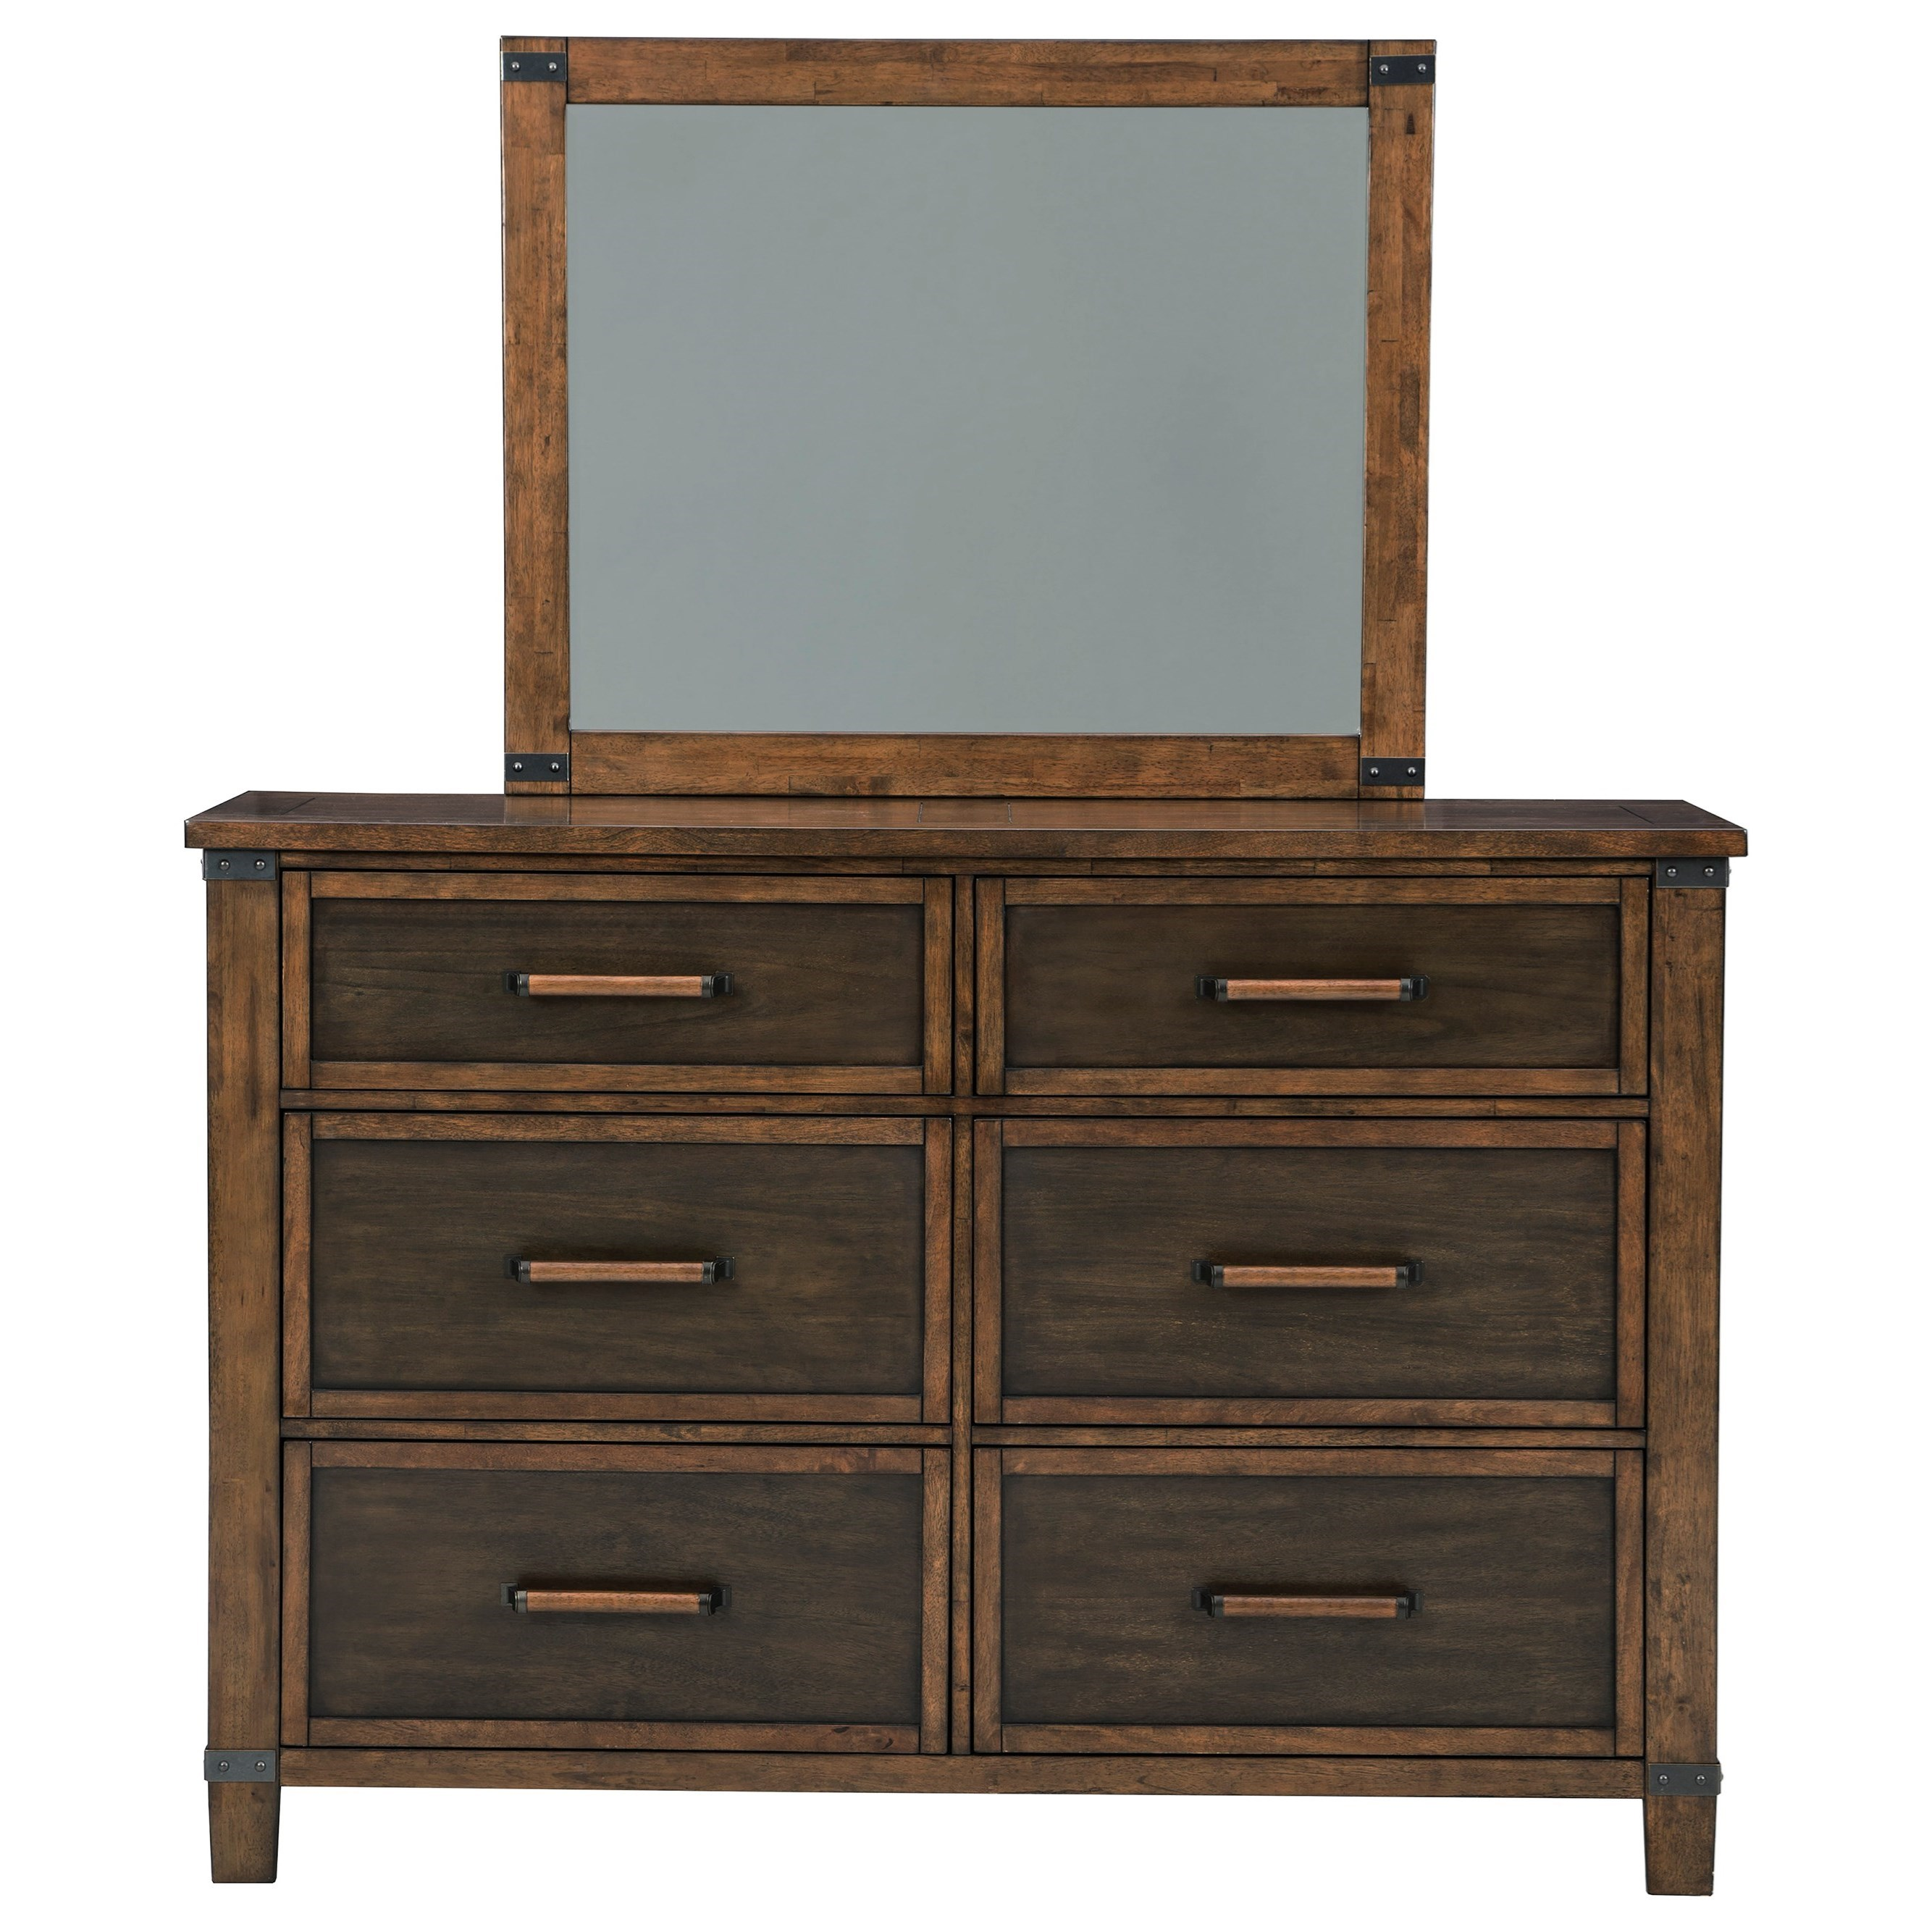 Wyattfield Dresser & Bedroom Mirror by Benchcraft at Zak's Warehouse Clearance Center